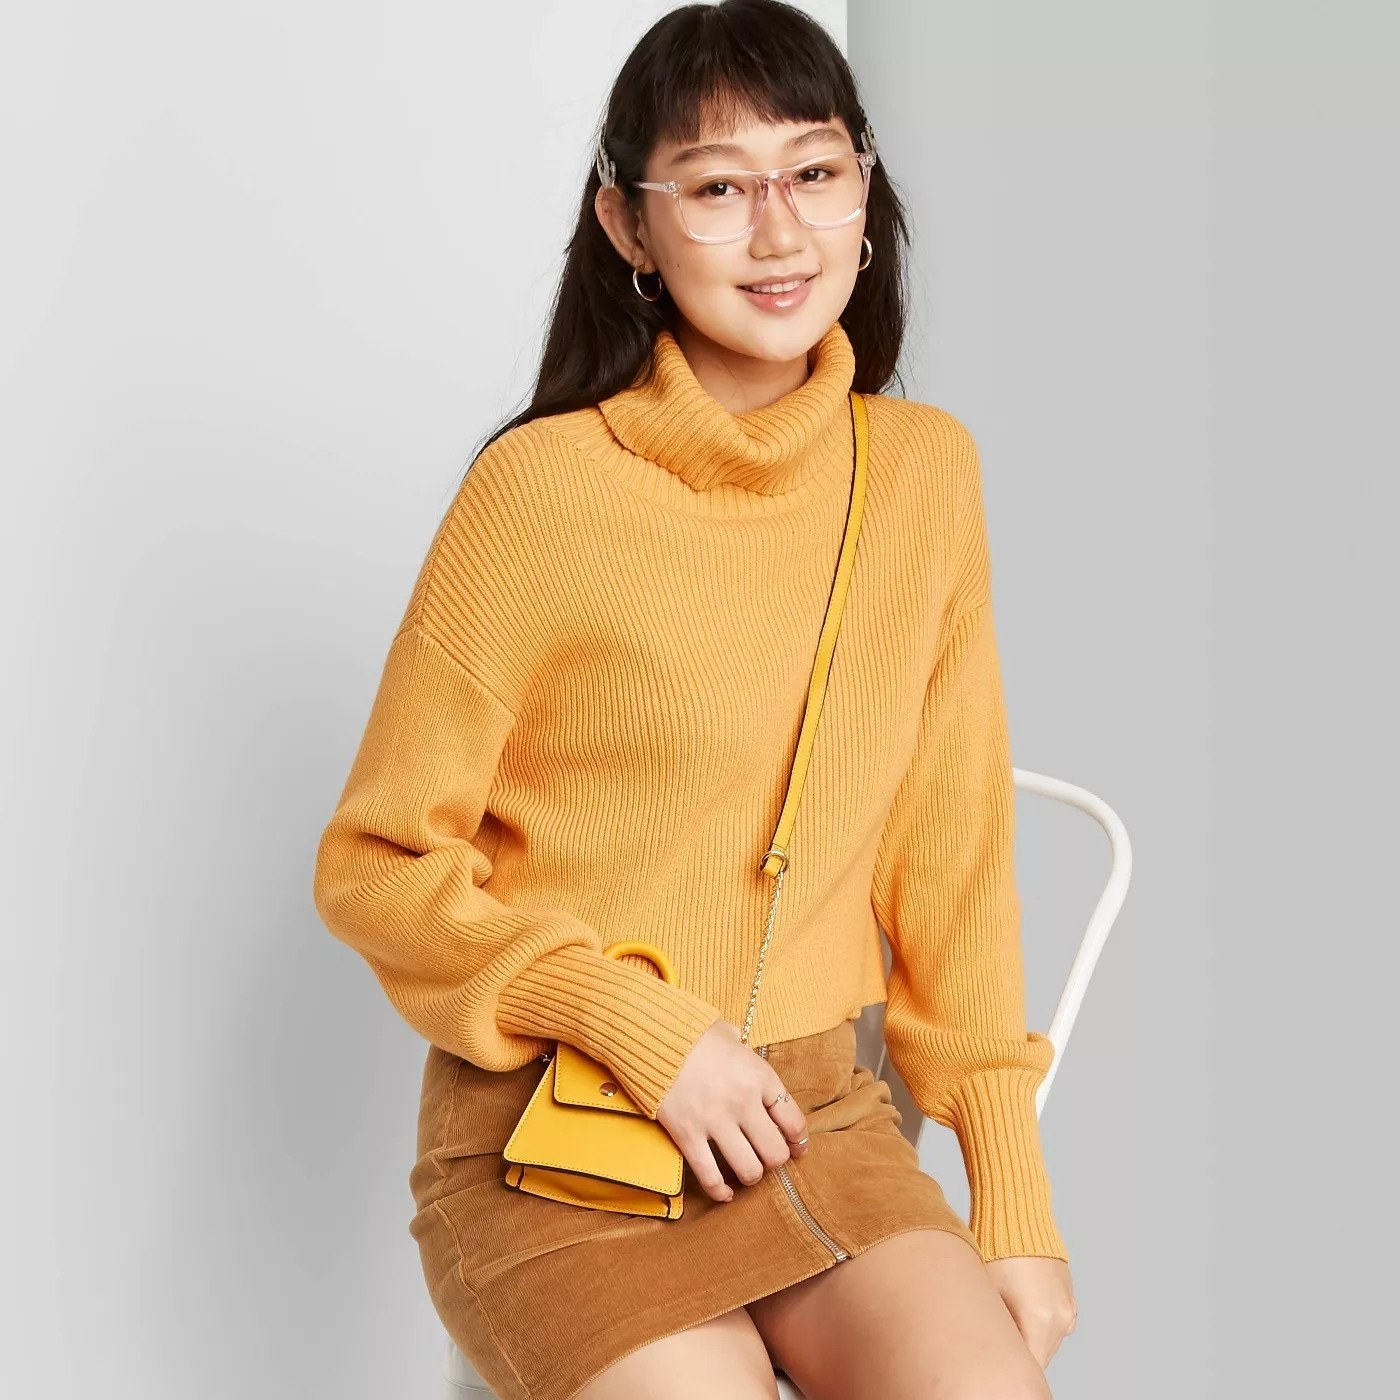 Model wears mustard yellow cropped turtleneck sweater with a suede skirt and a micro yellow bag